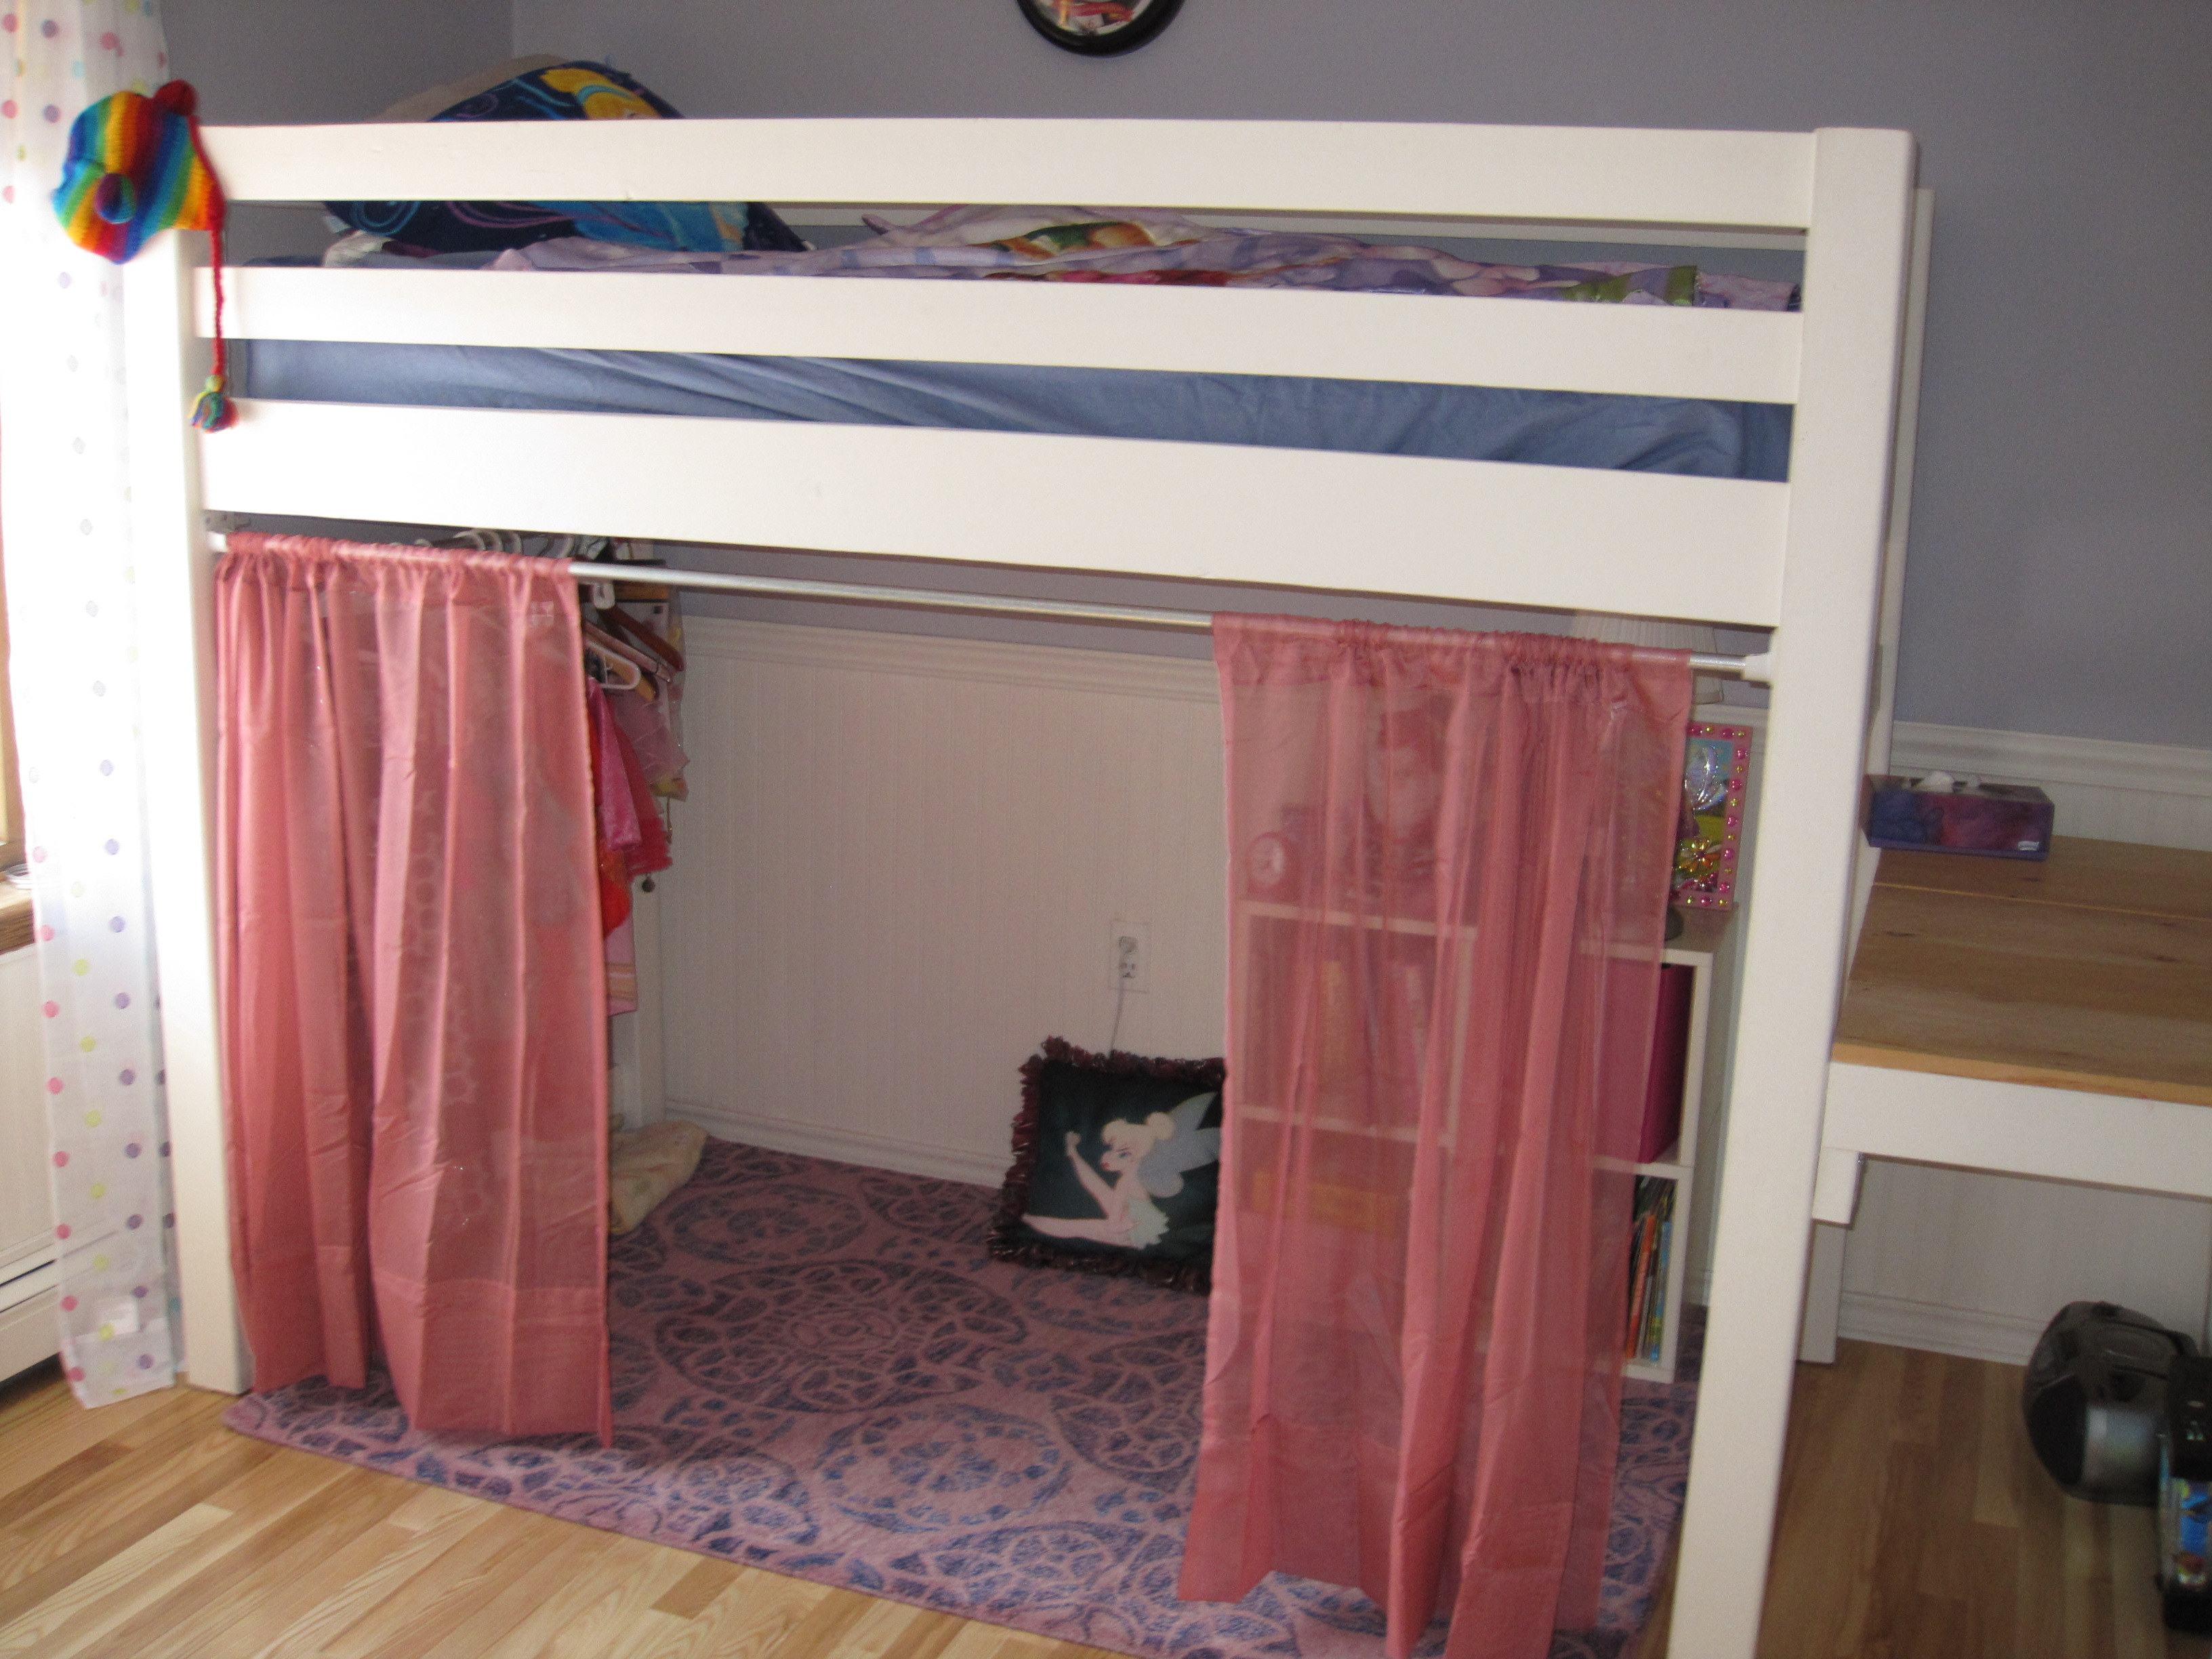 Bunk Bed Curtains | Diy Bunk Bed Curtains | Bunk Beds Tent & Curtain: Bunk Bed Tent Canopy | Pinterest Loft Bed | Bunk Bed Curtains